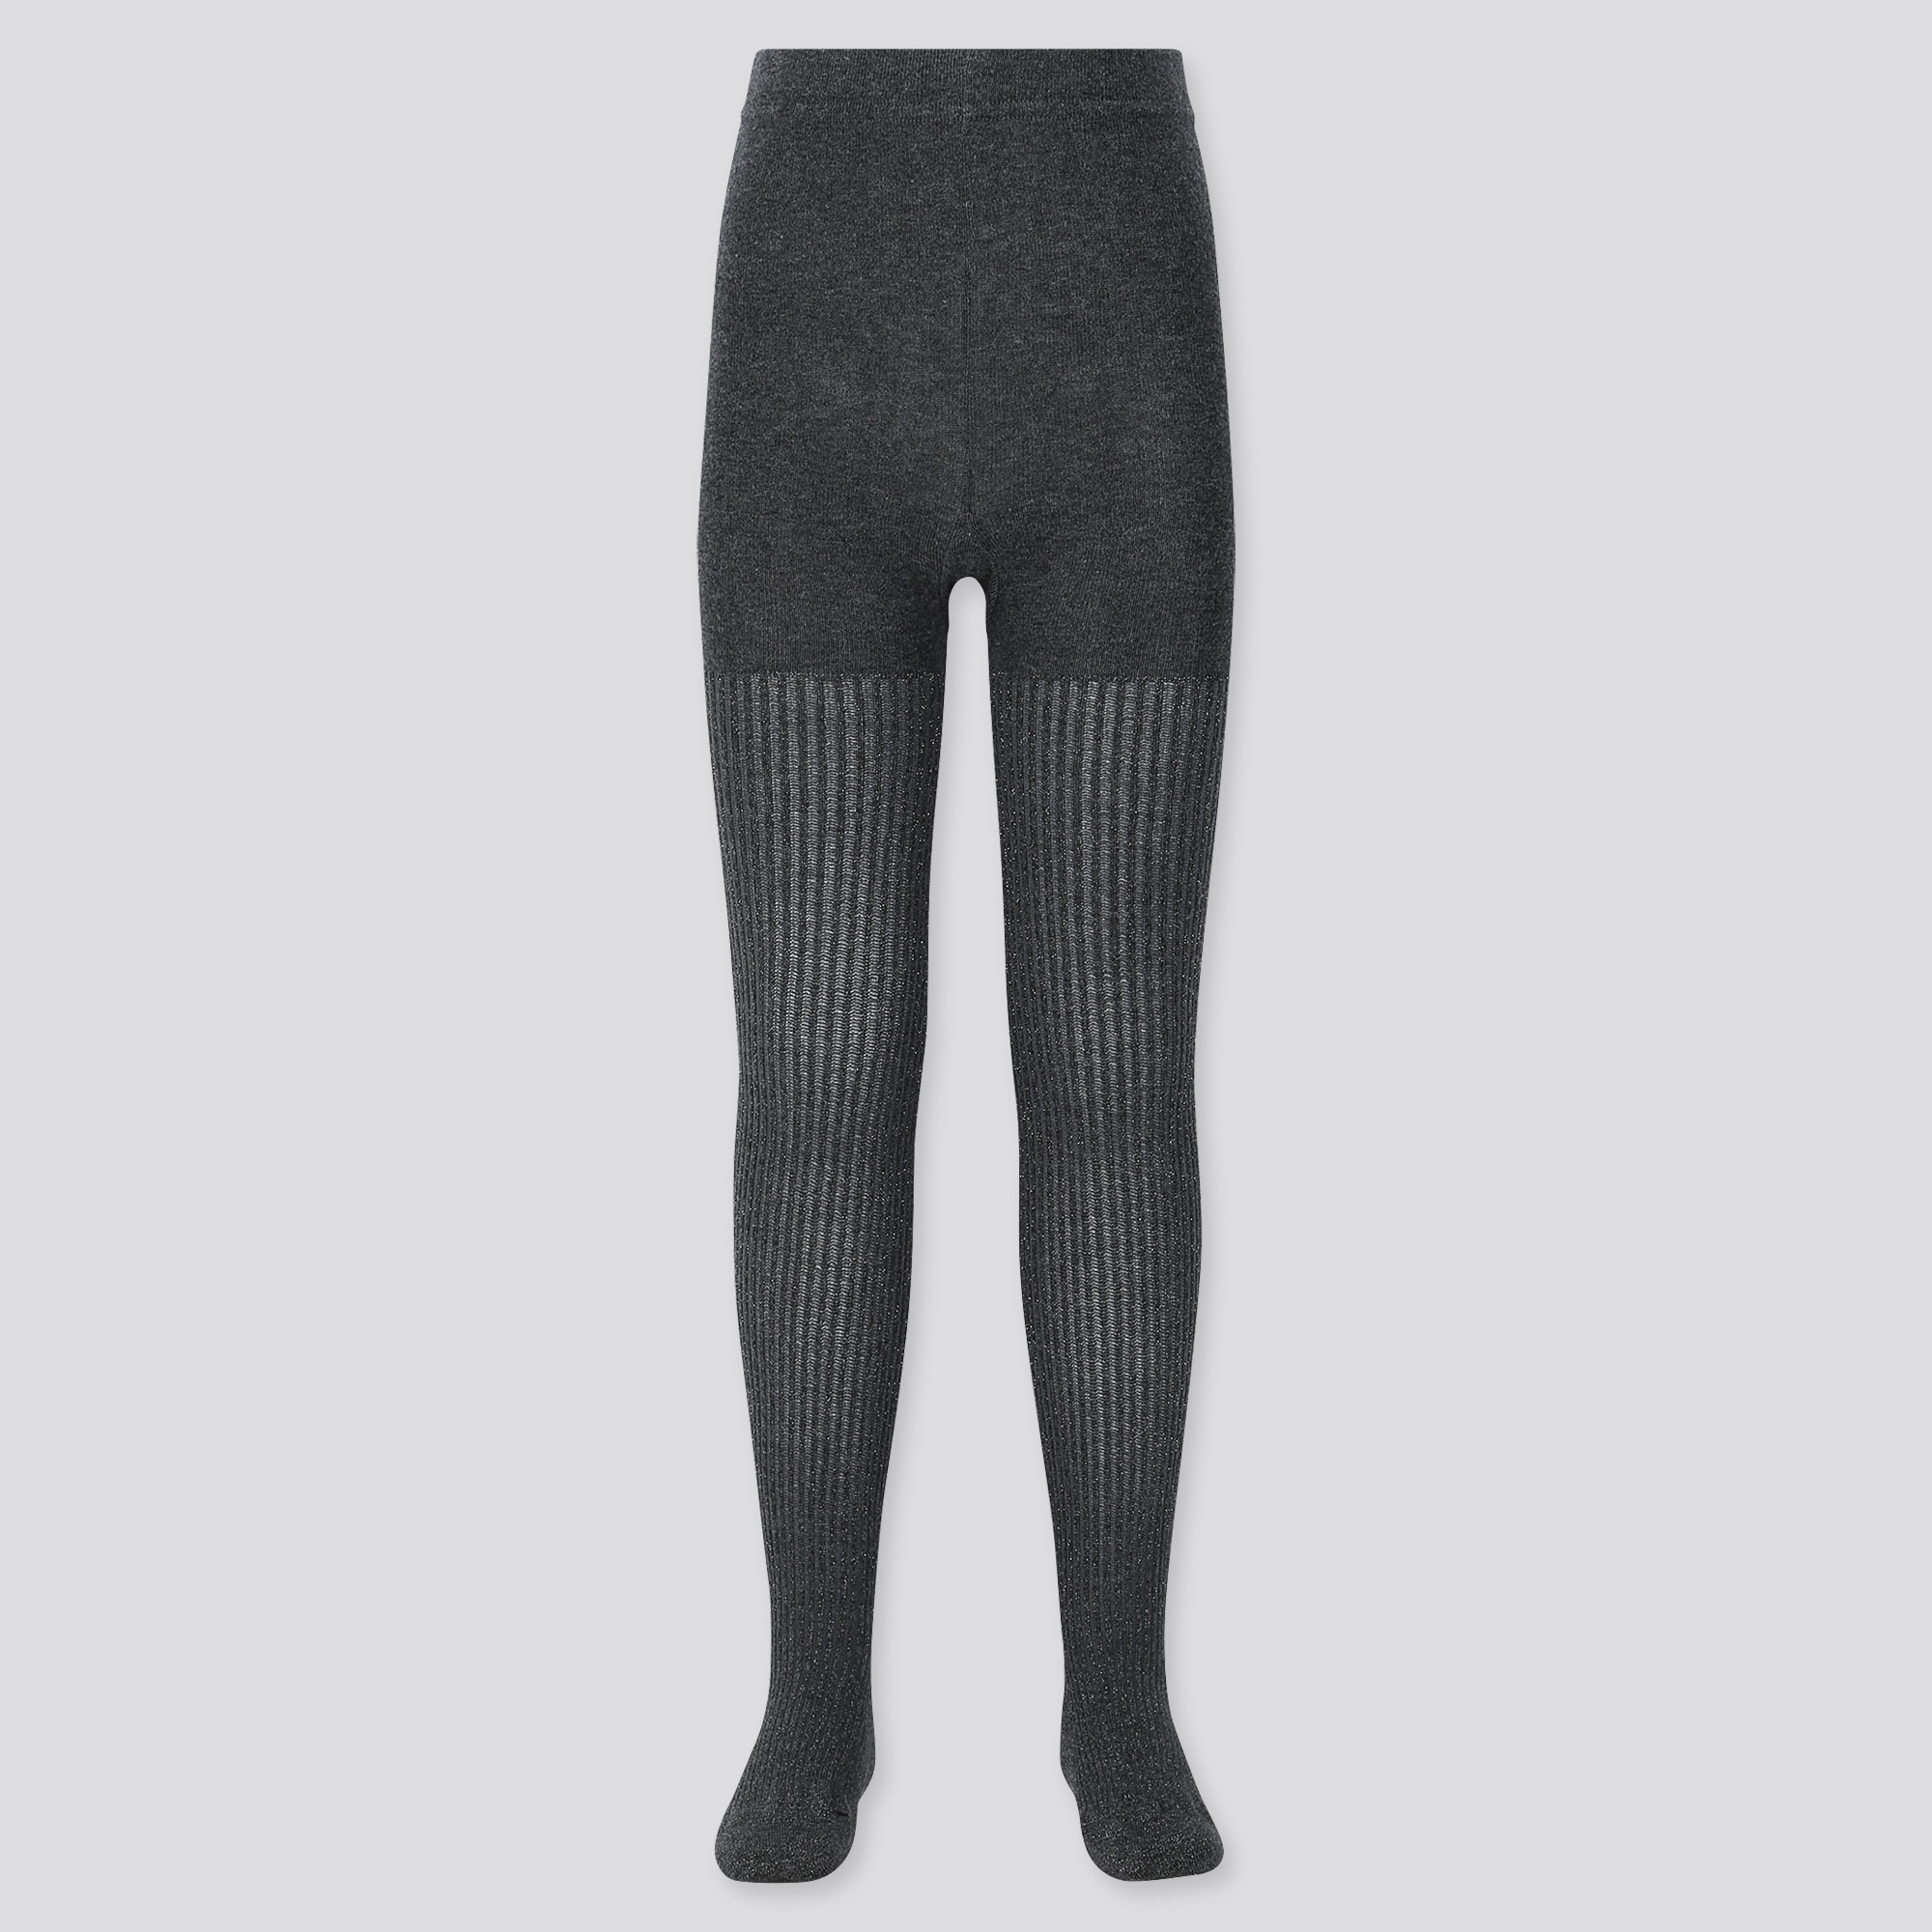 GIRLS KNITTED TIGHTS